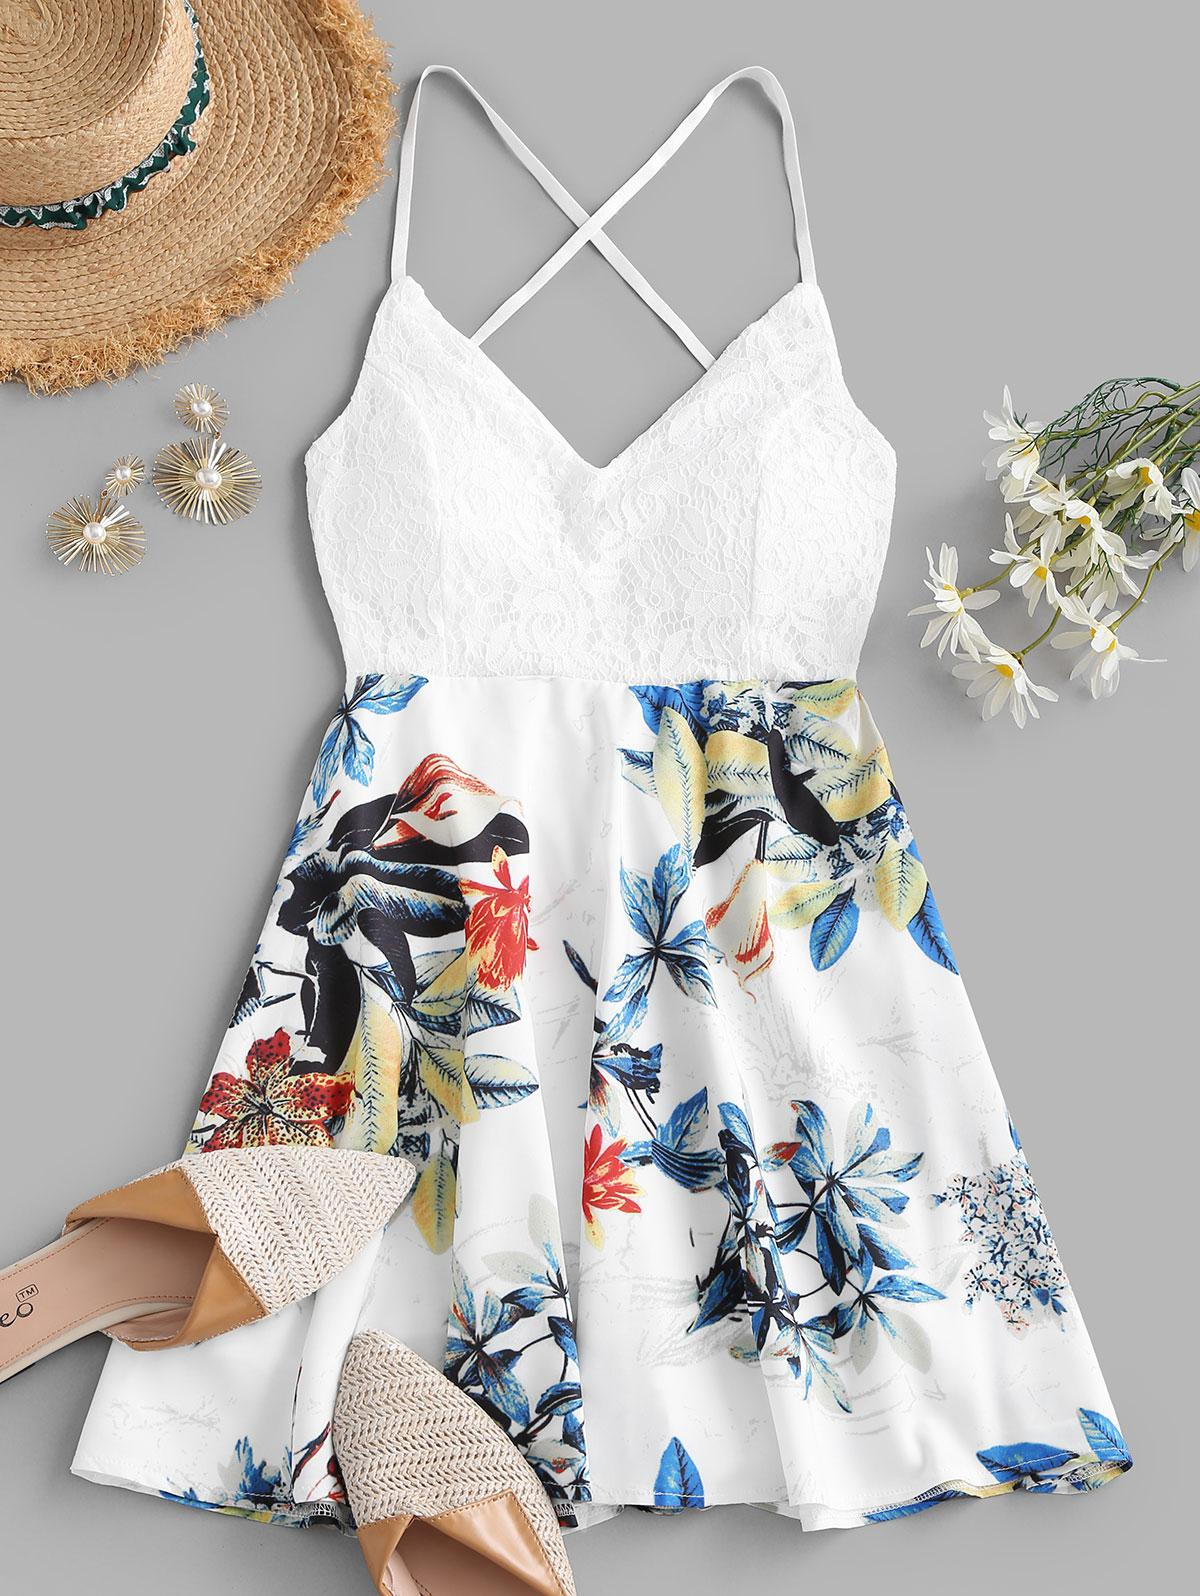 Flower Lace Panel Padded Criss Cross Cami Dress